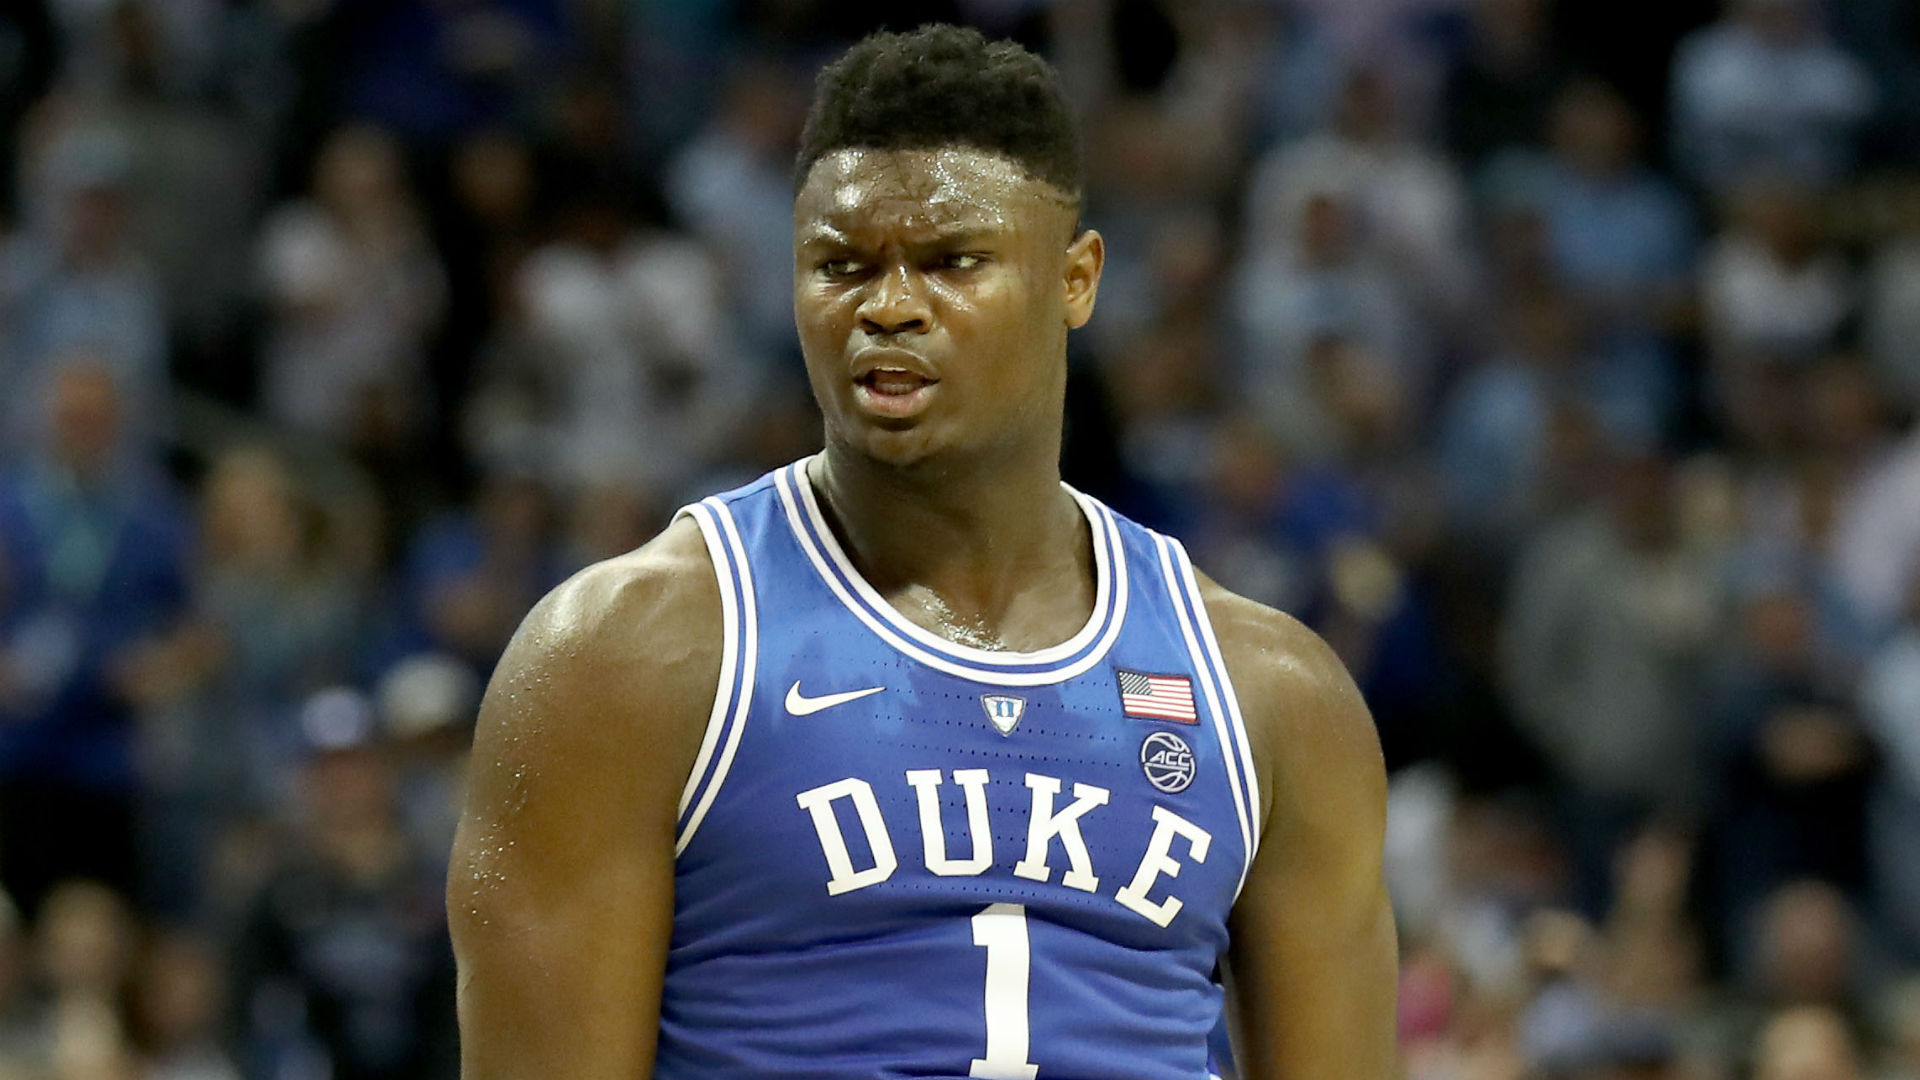 Duke vs. Florida State - 3/16/19 College Basketball Pick, Odds, and Prediction